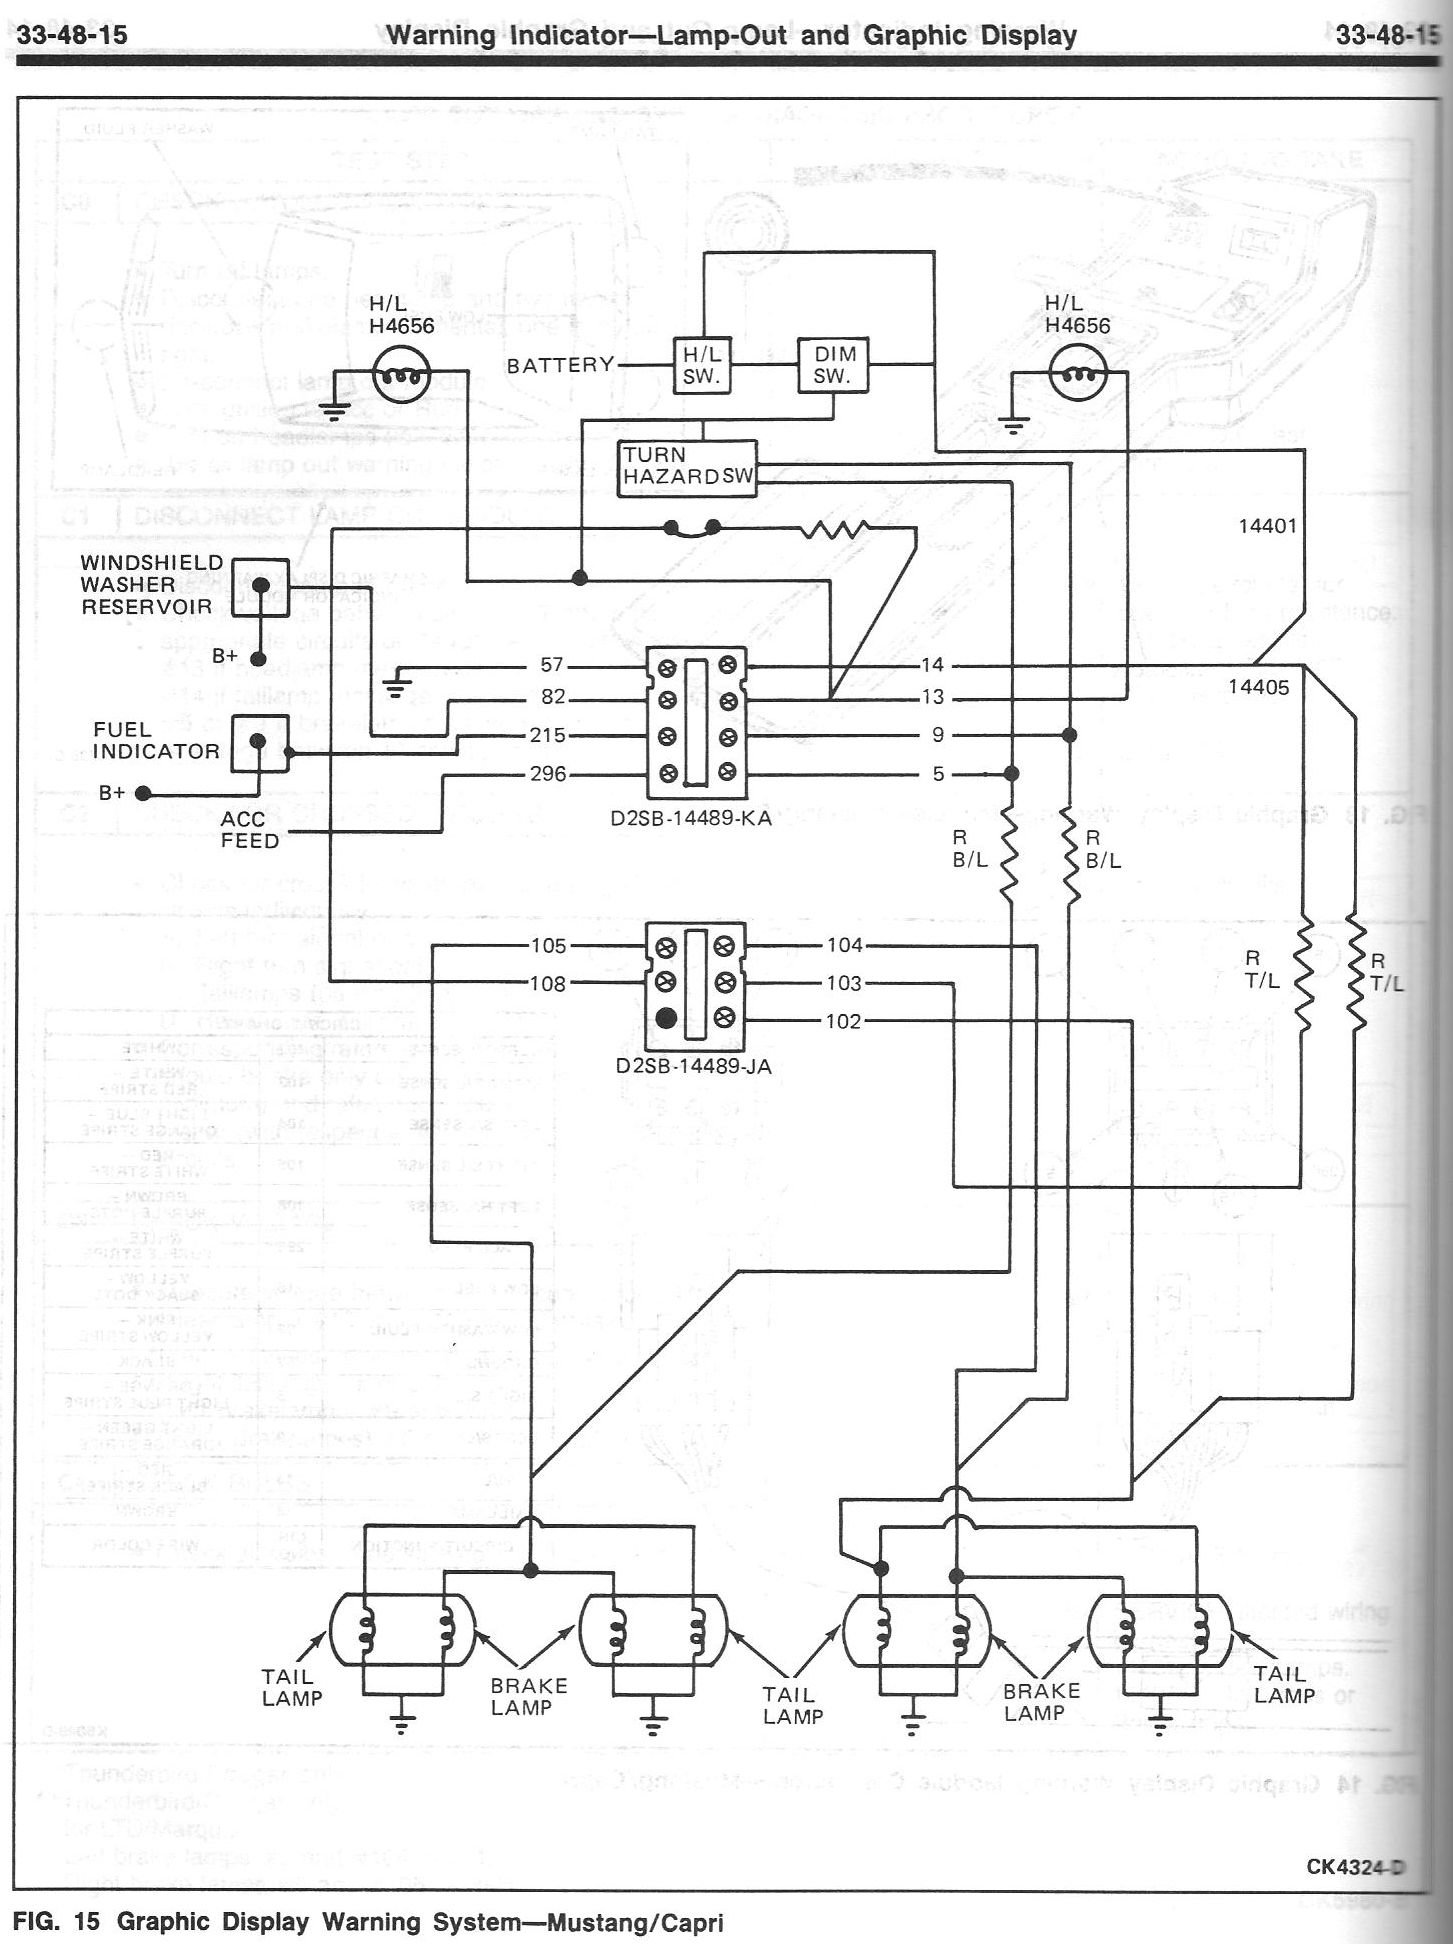 mustang gt indicator lights ford mustang forum click image for larger version graphic display warning system wiring diagram jpg